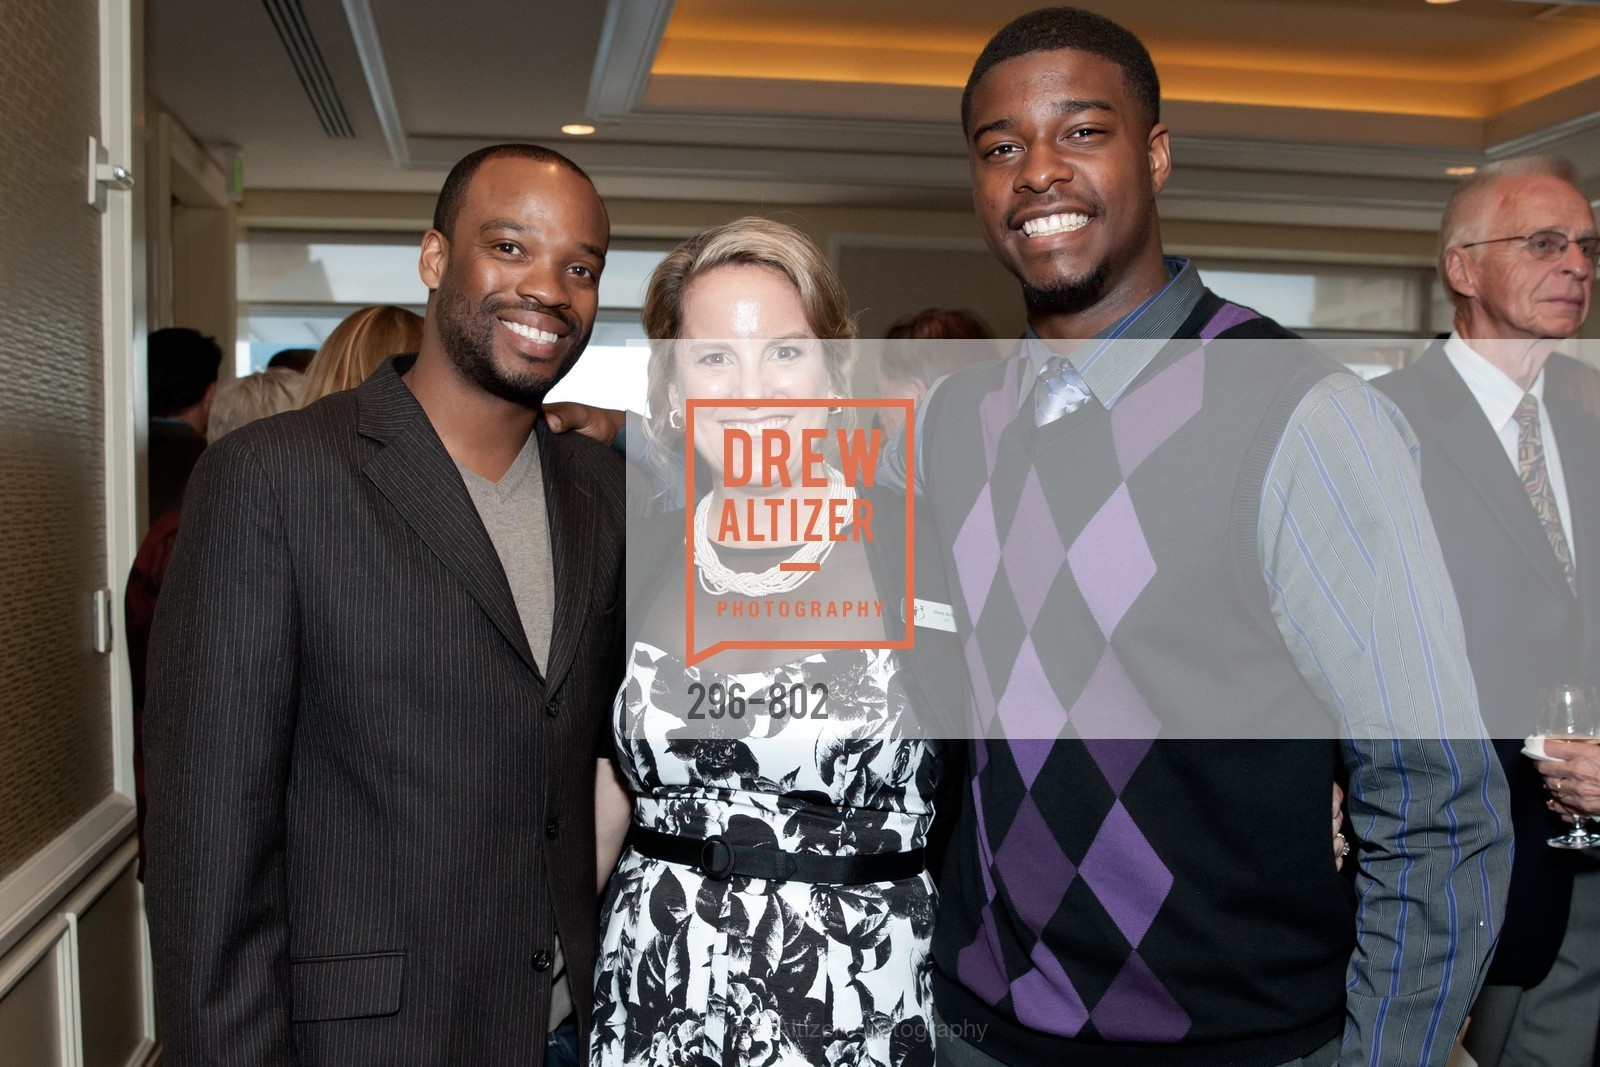 Anye Spivey, Dawn Kruger, Isaias, MR PORTER Celebrate The San Francisco Issue of The Journal, US, April 23rd, 2015,Drew Altizer, Drew Altizer Photography, full-service agency, private events, San Francisco photographer, photographer california